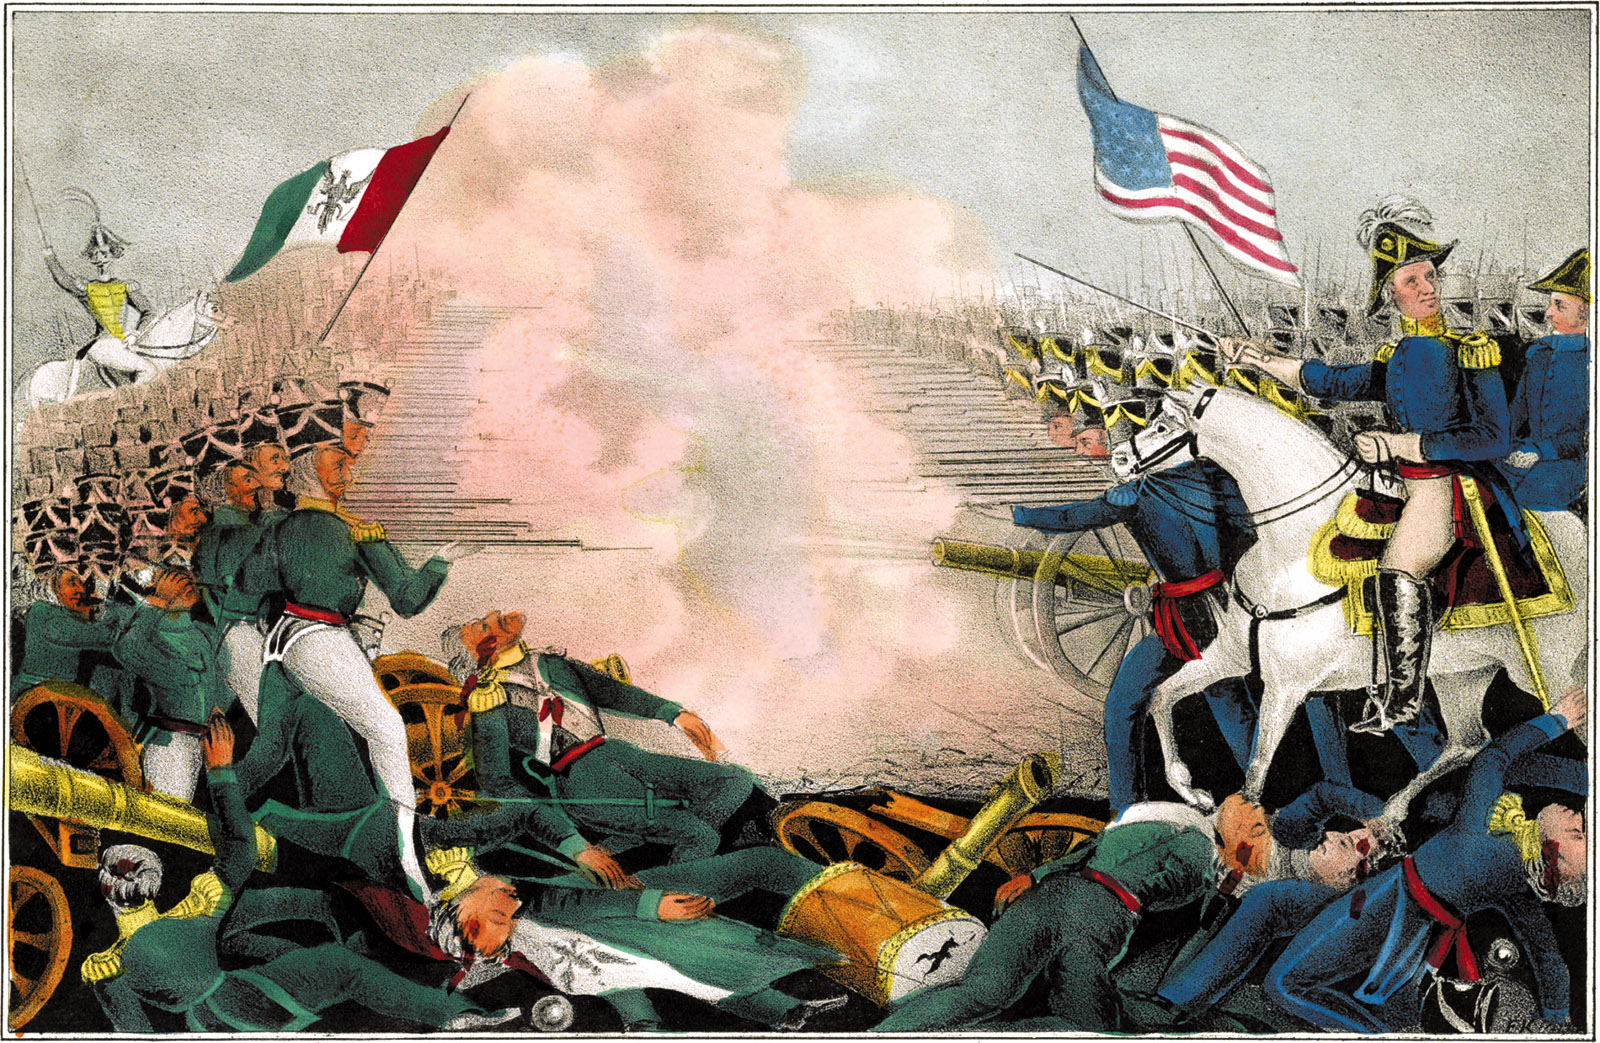 The Battle of Buena Vista, also known as the Battle of La Angostura, during the Mexican-American War, February 1847